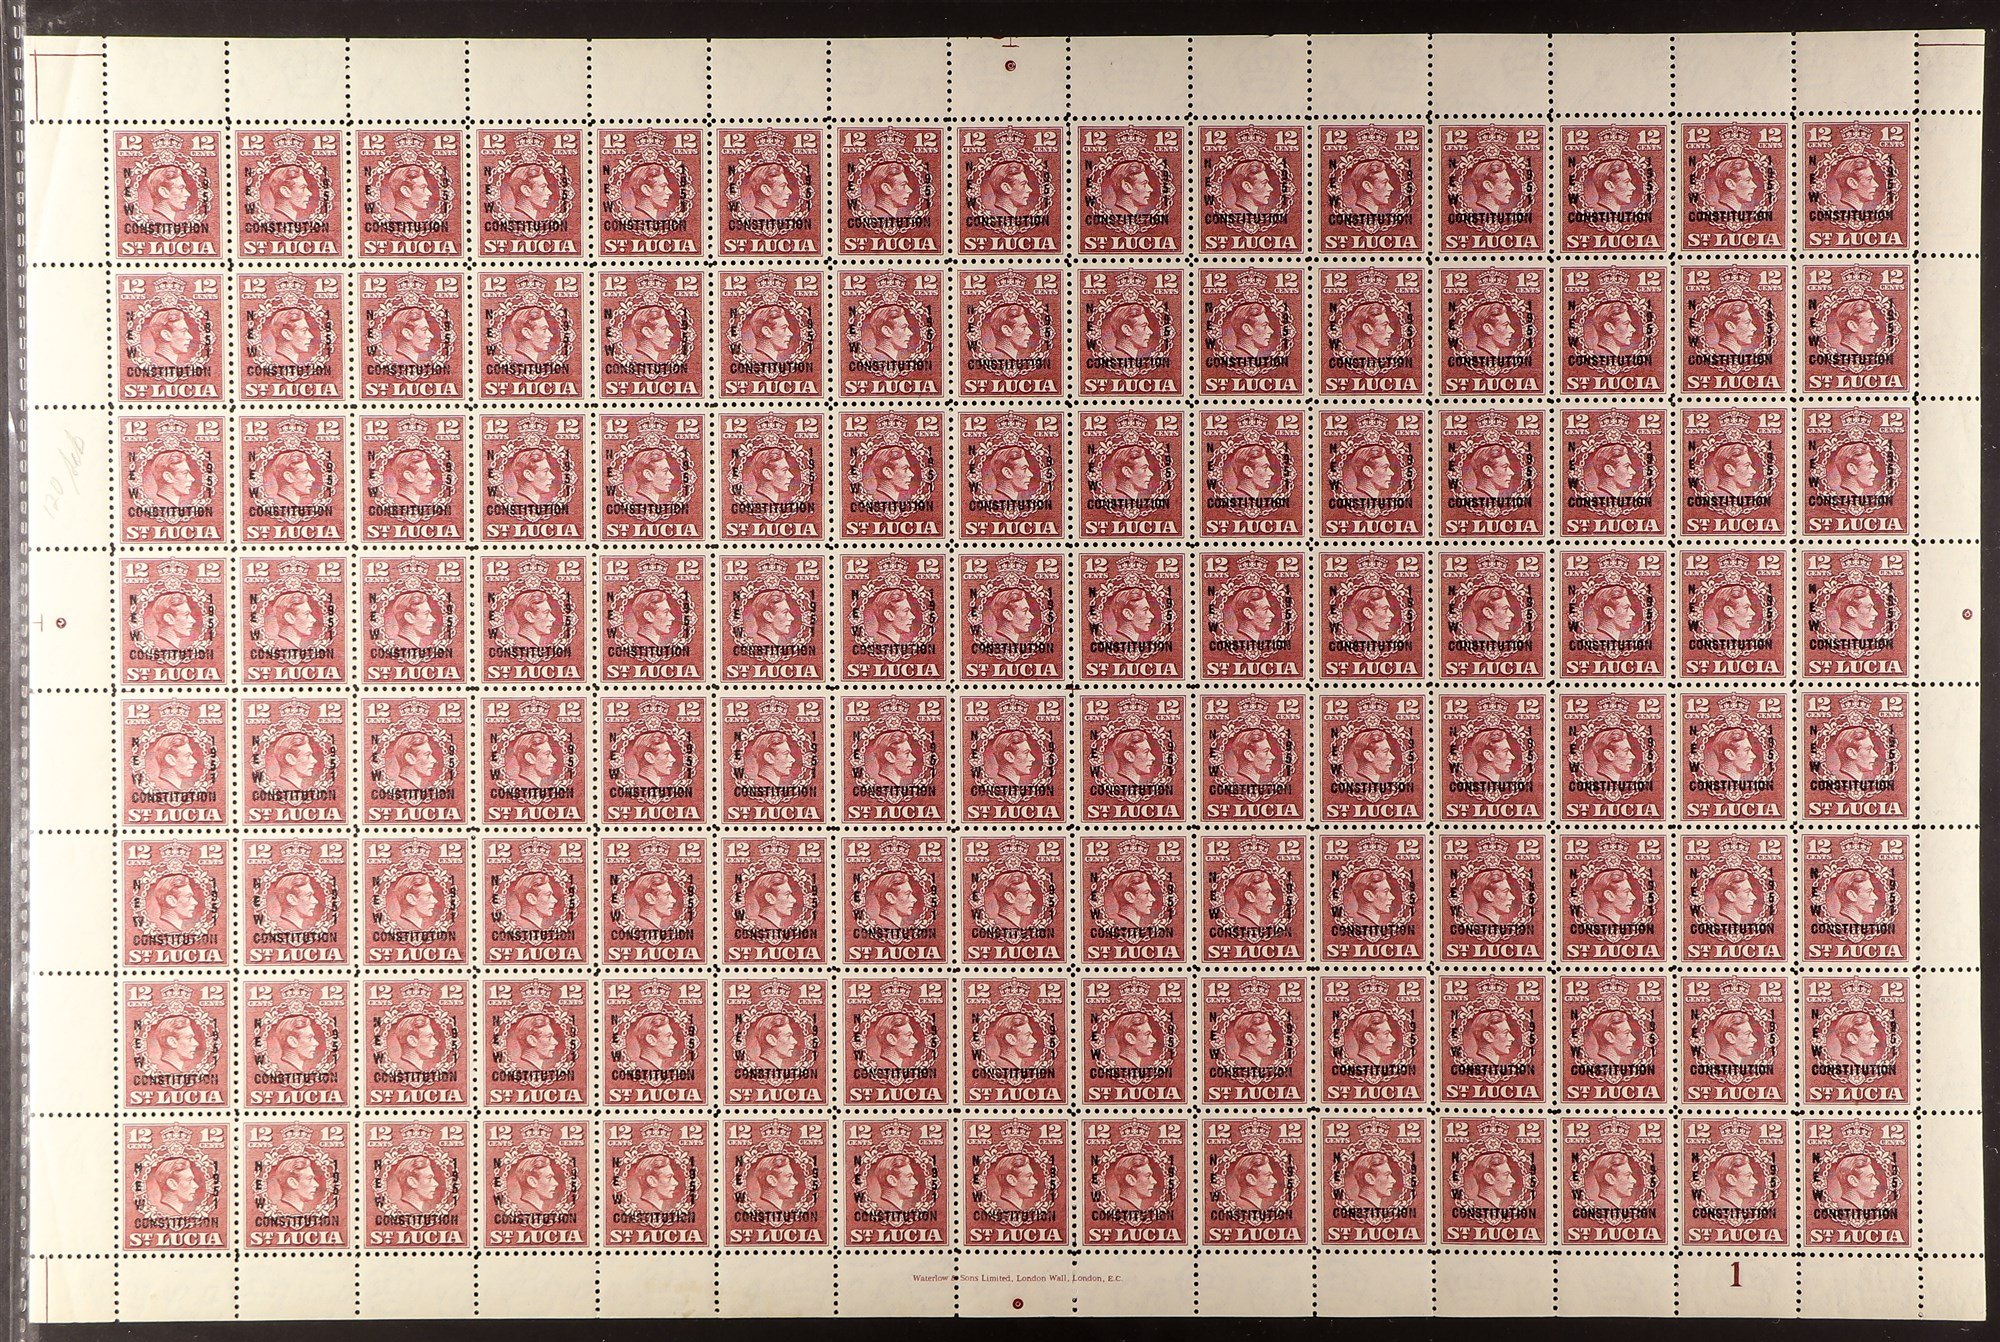 ST LUCIA 1951 New Constitution set, SG 167/70, in sheets of 120 (15 x 8), never hinged mint. Cat £